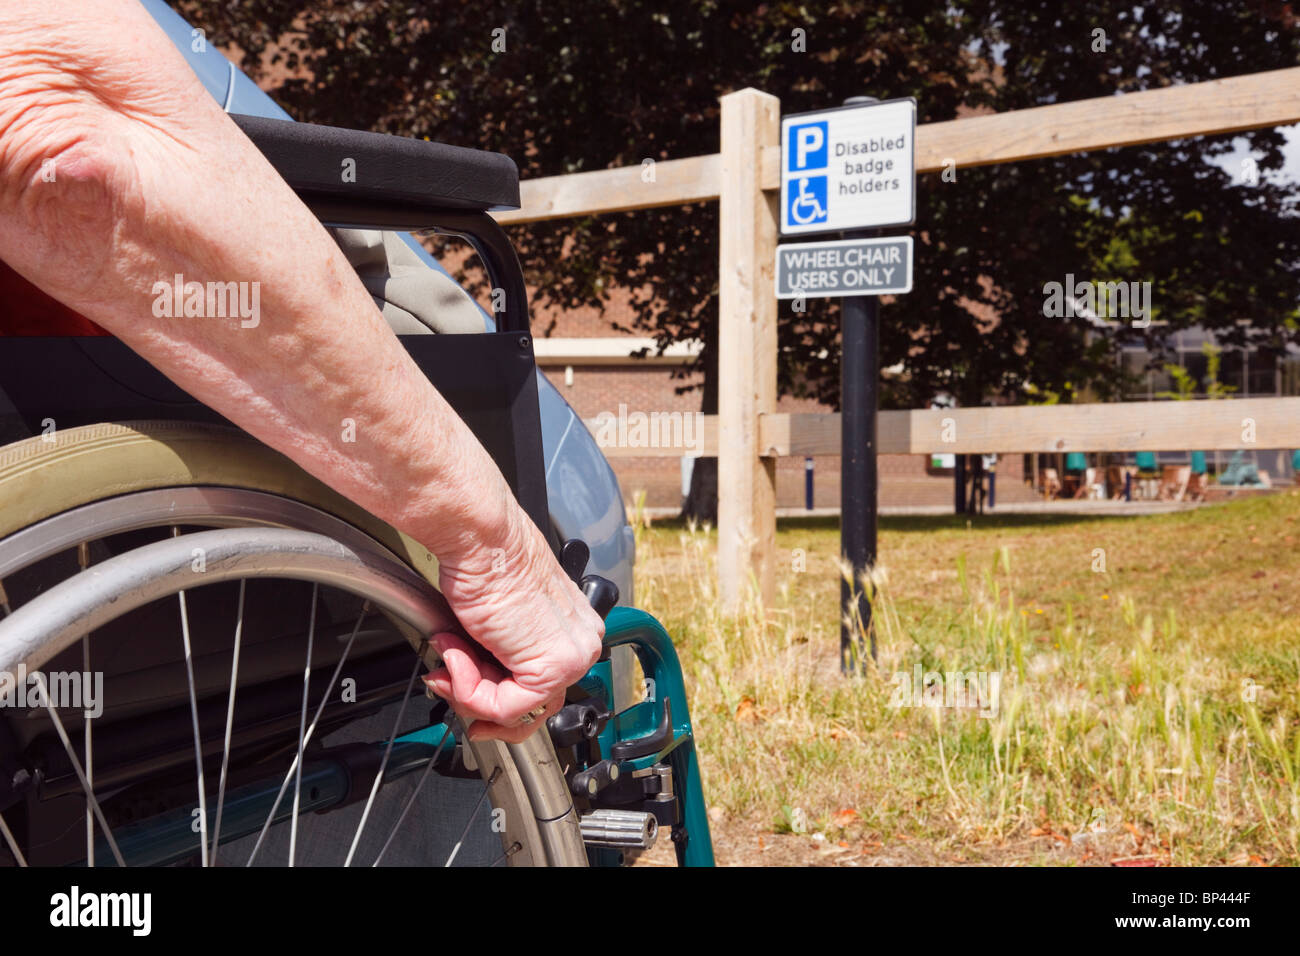 Elderly woman sitting in a wheelchair by a car parked in disabled parking bay by a sign for blue badge wheelchair - Stock Image